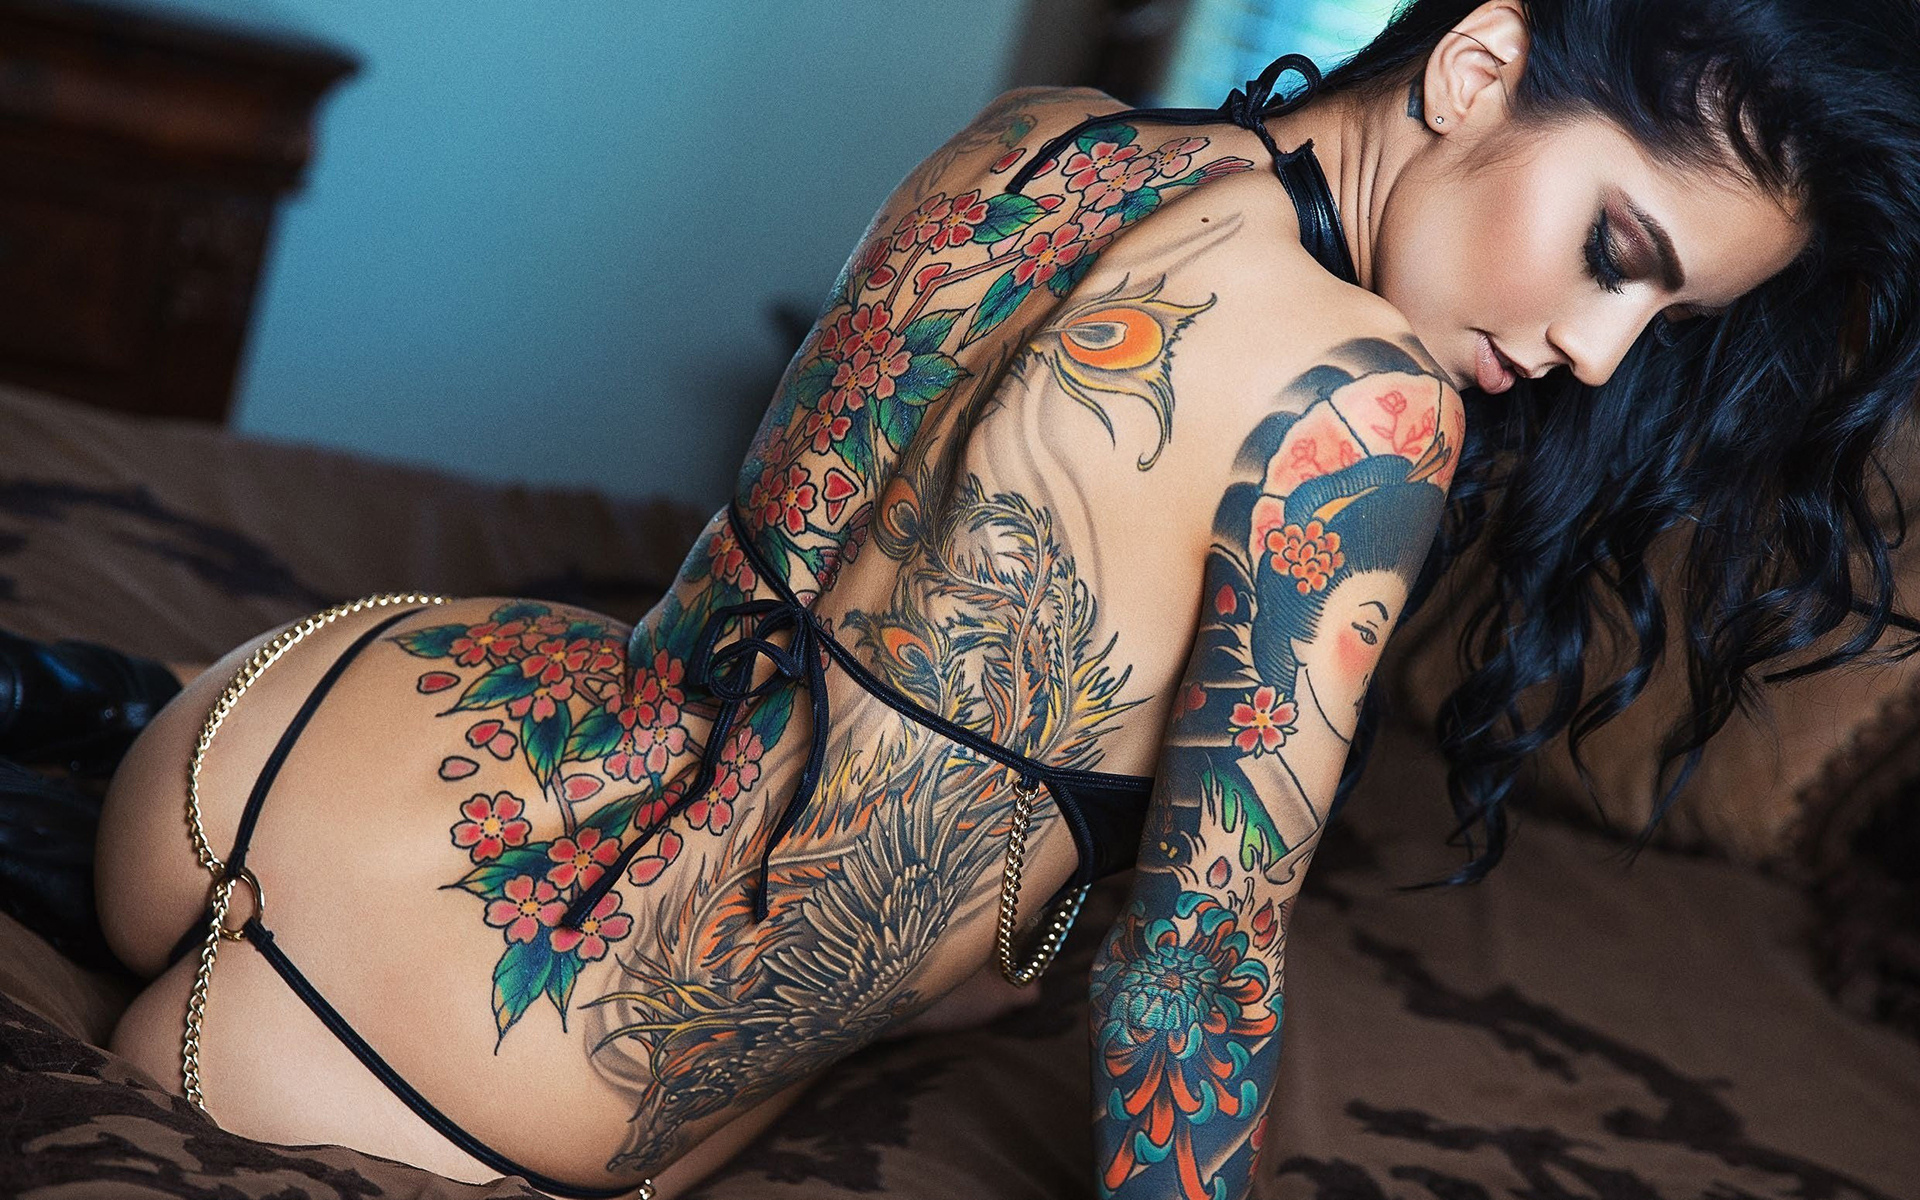 Hot tattoos on women nude #7